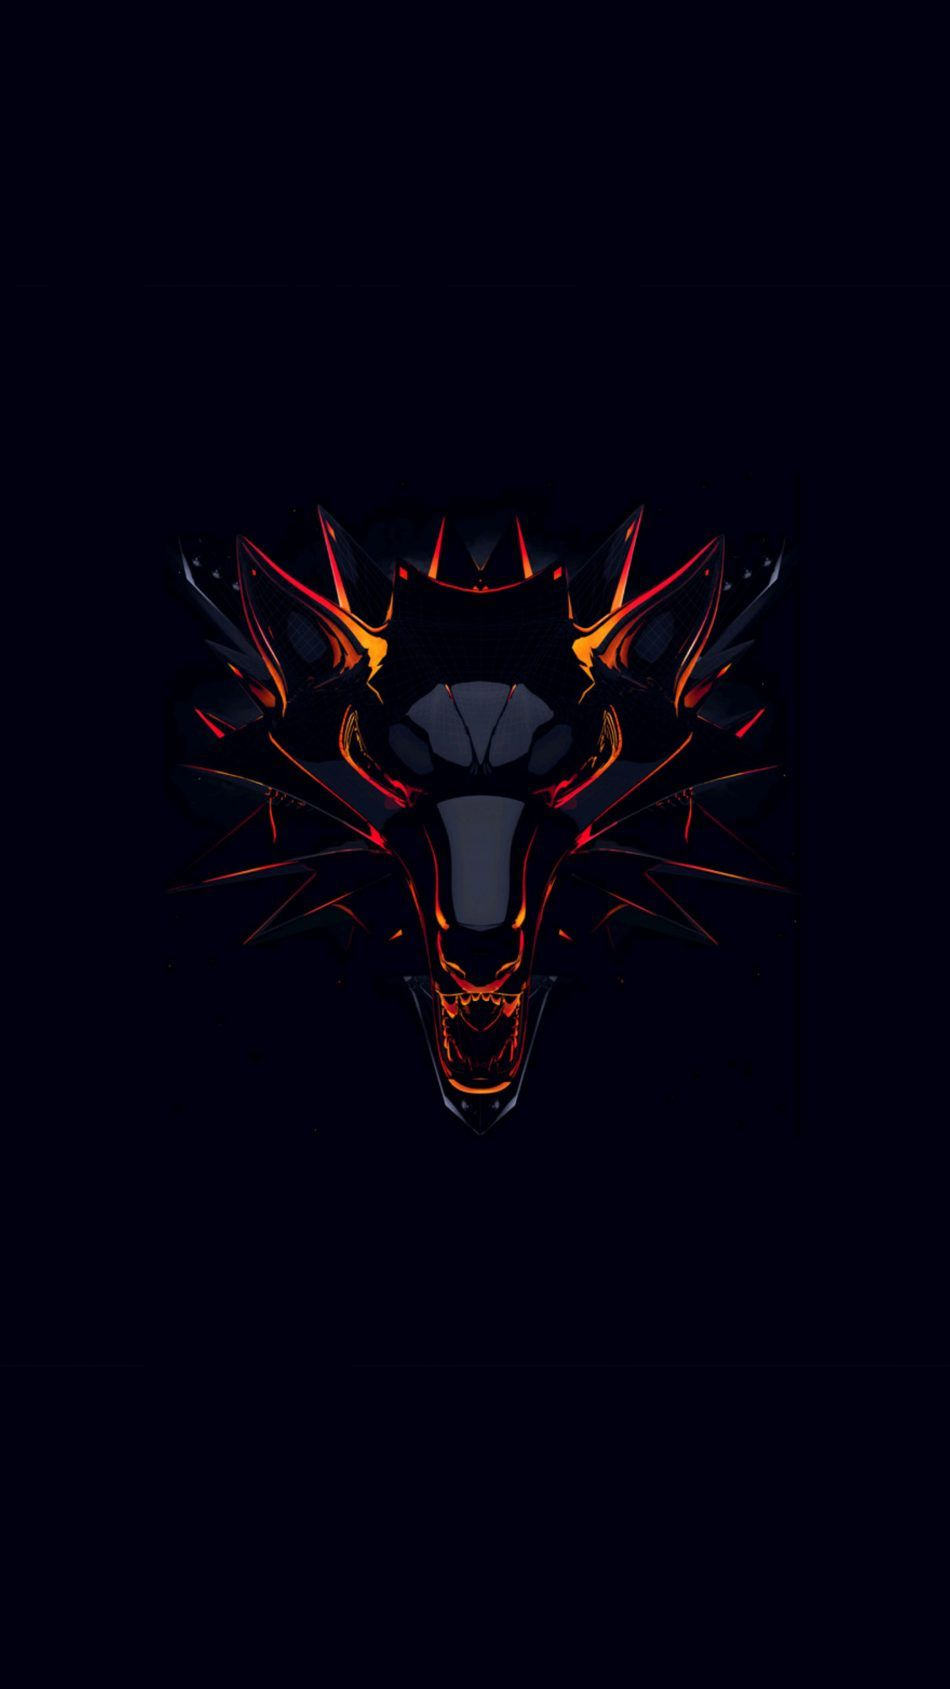 Witcher Dark Background Minimal Dark Wallpaper Hd Wallpapers For Mobile Hd Dark Wallpapers